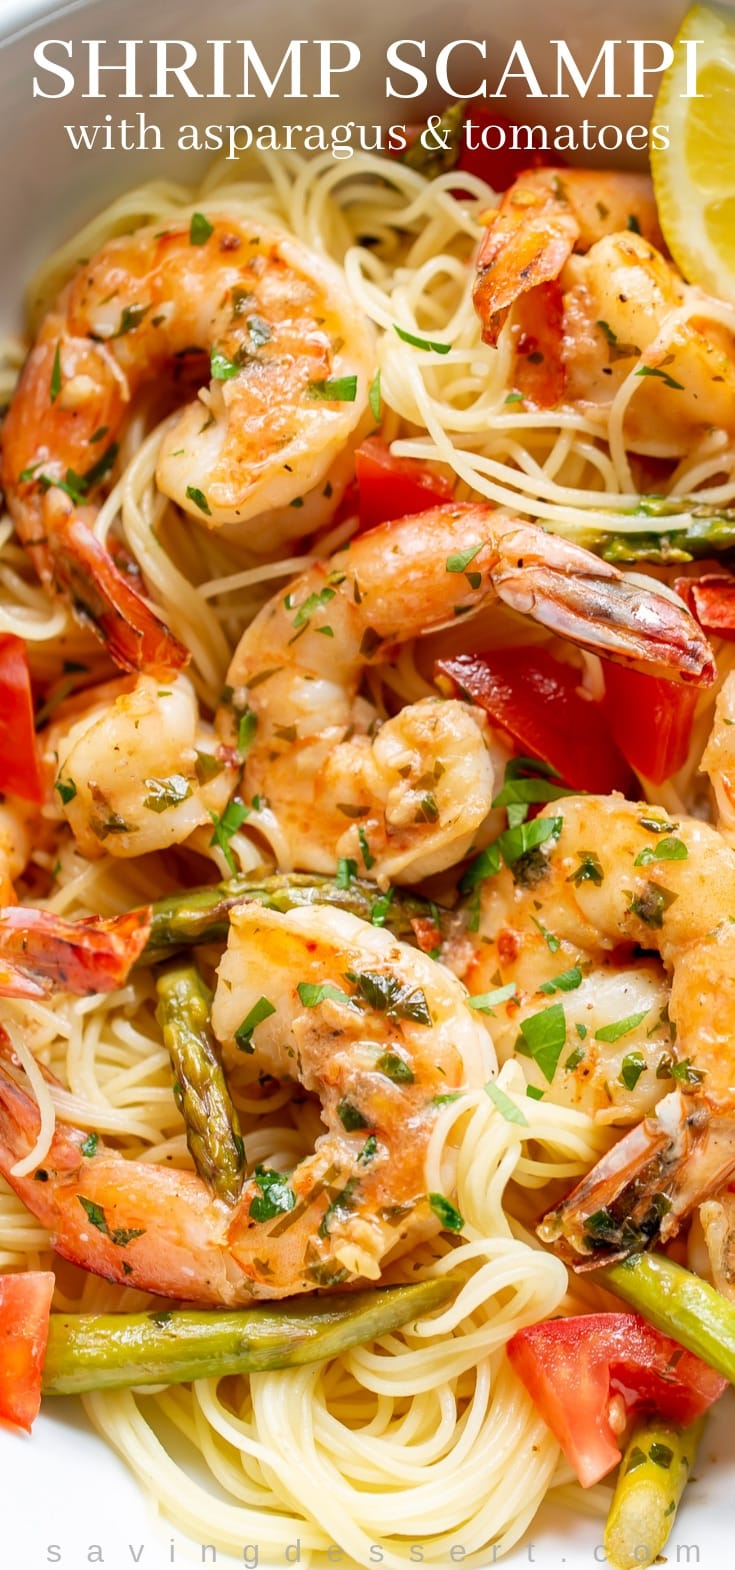 Shrimp Scampi with Asparagus and Tomatoes ~ a wonderful restaurant quality dish you can make at home! #shrimpscampi #scampi #shrimp #Italian #dinner #pasta #asparagus #tomatoes #restaurantqualitydinner #seafood